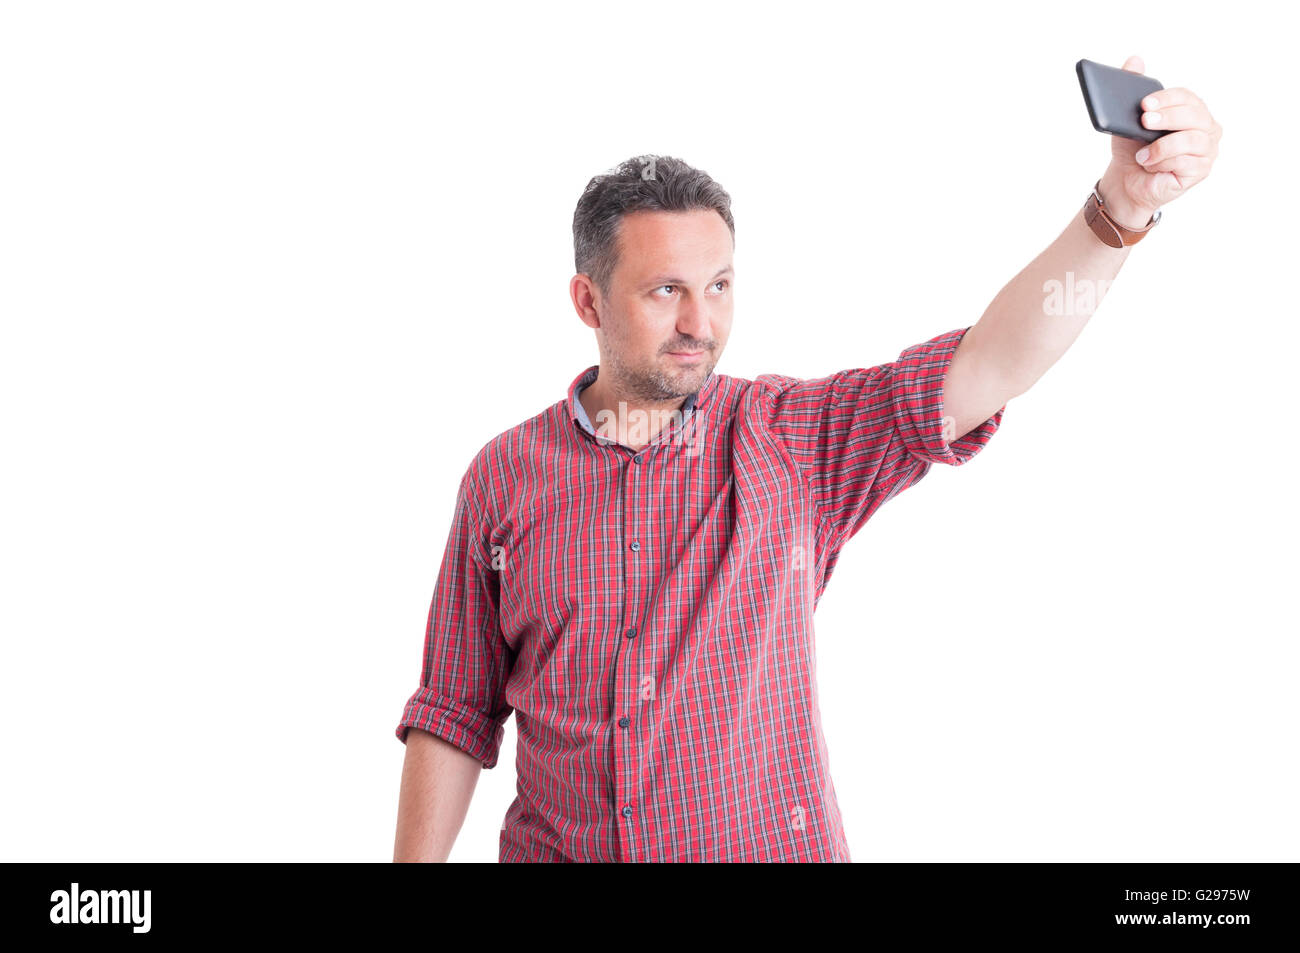 Modern man taking a selfie or selfportrait with smartphone - Stock Image